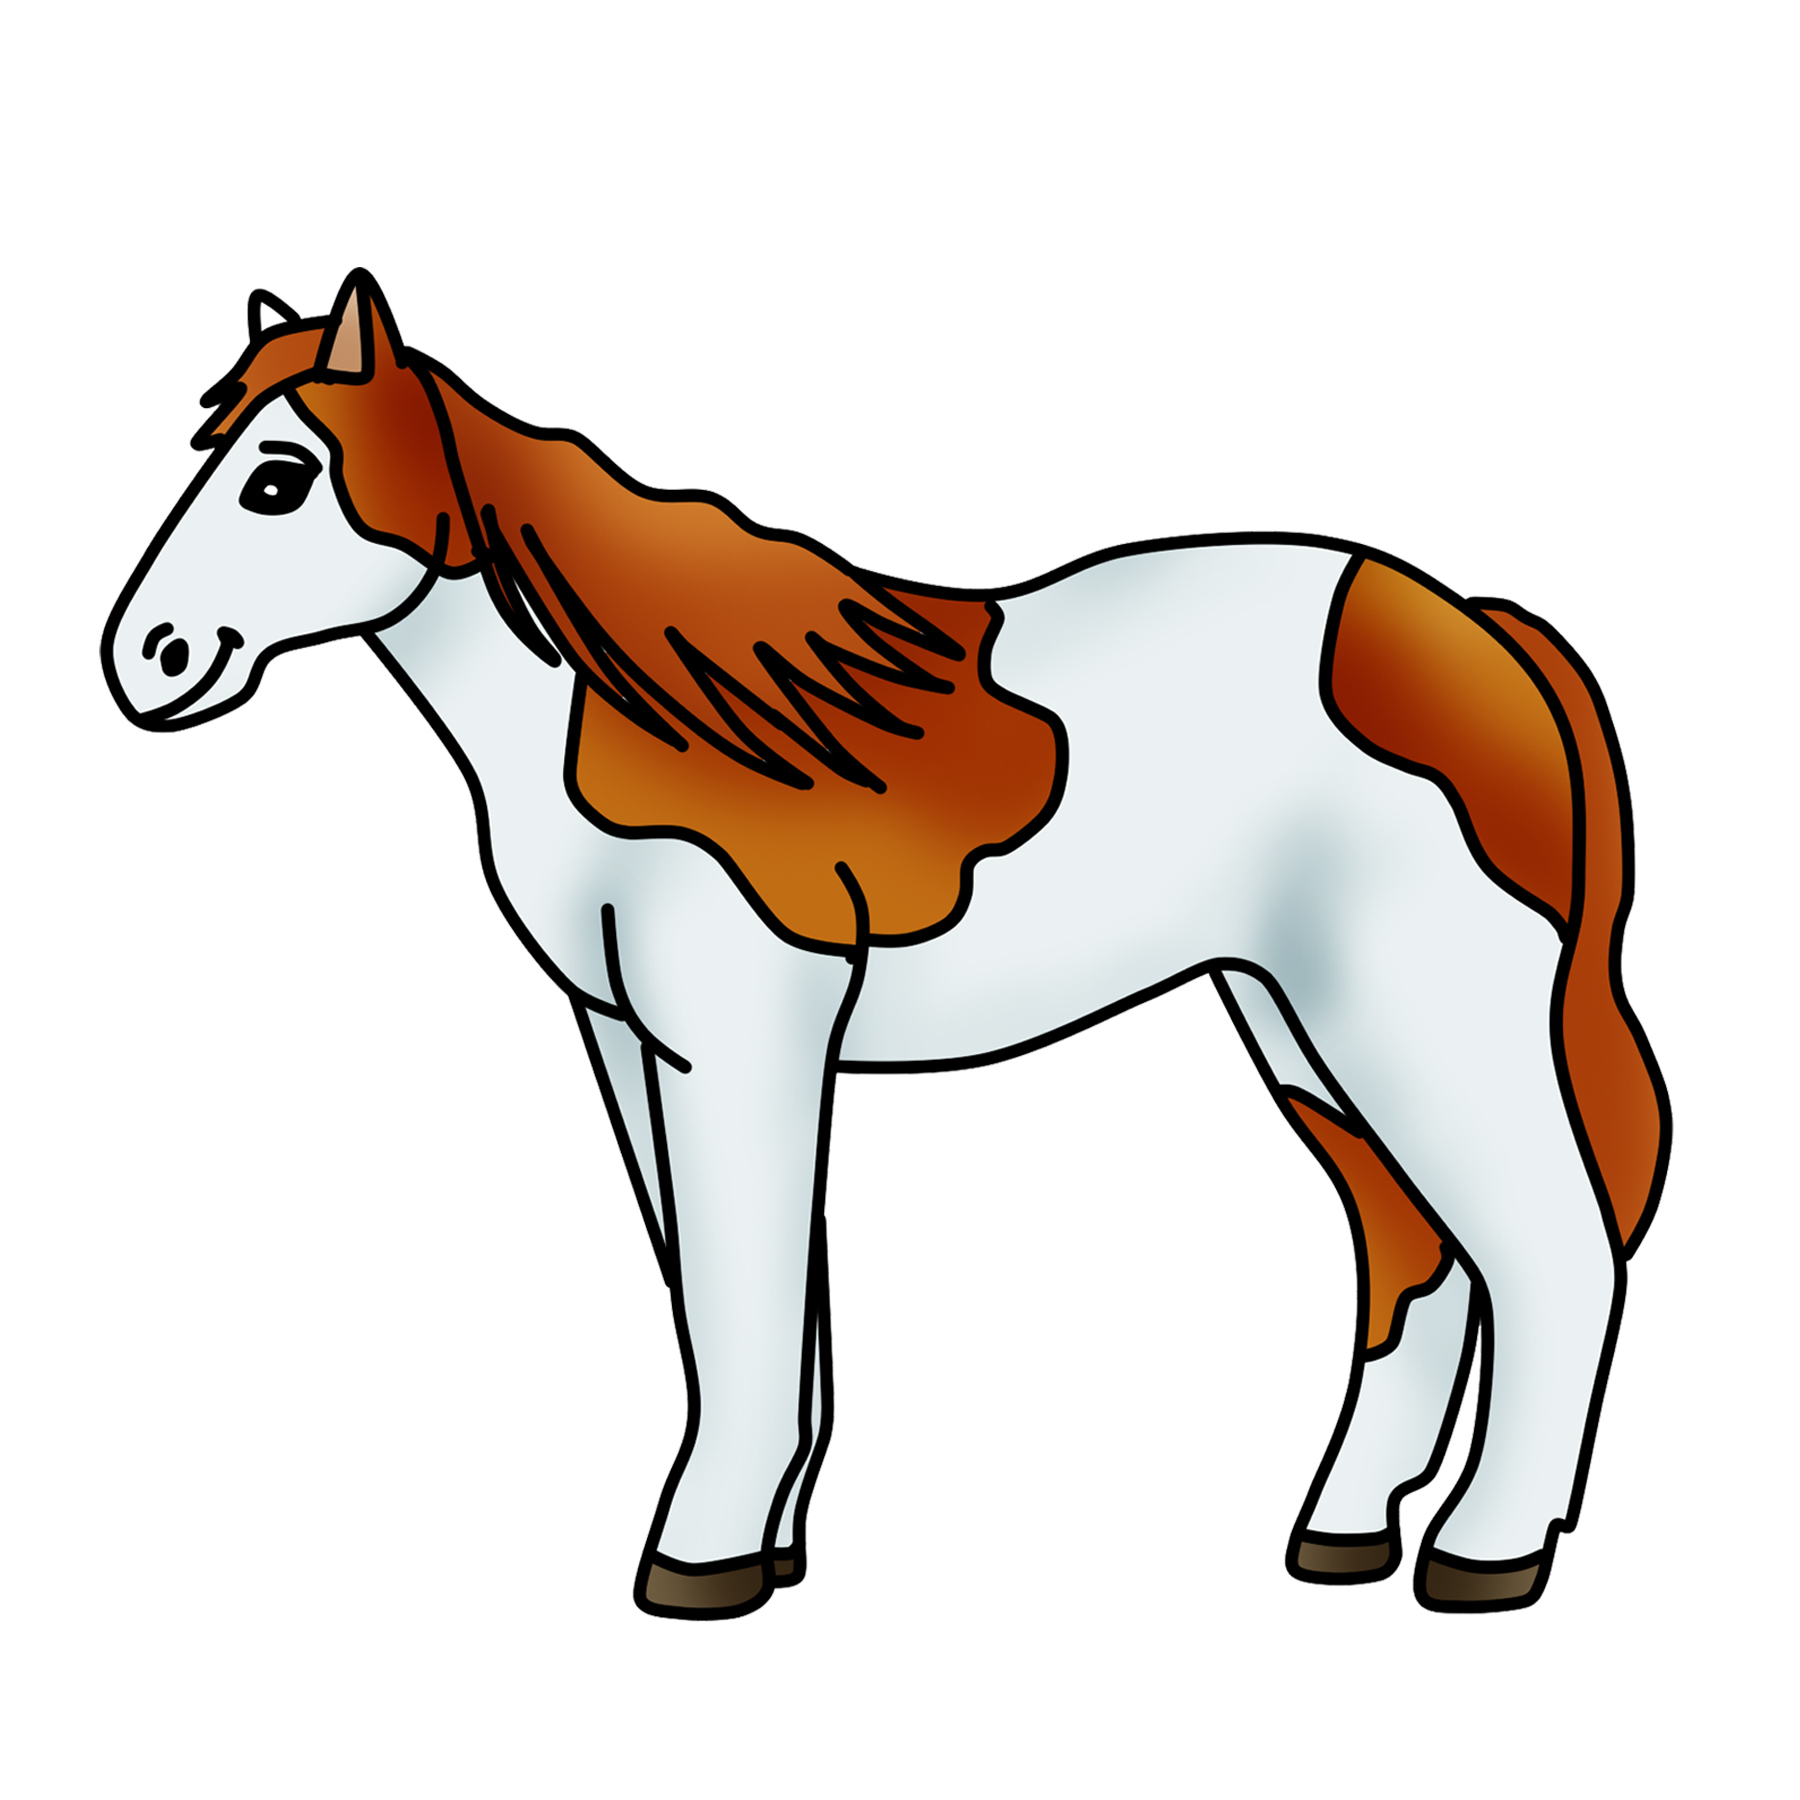 Cartoon Horse Clipart at GetDrawings | Free download